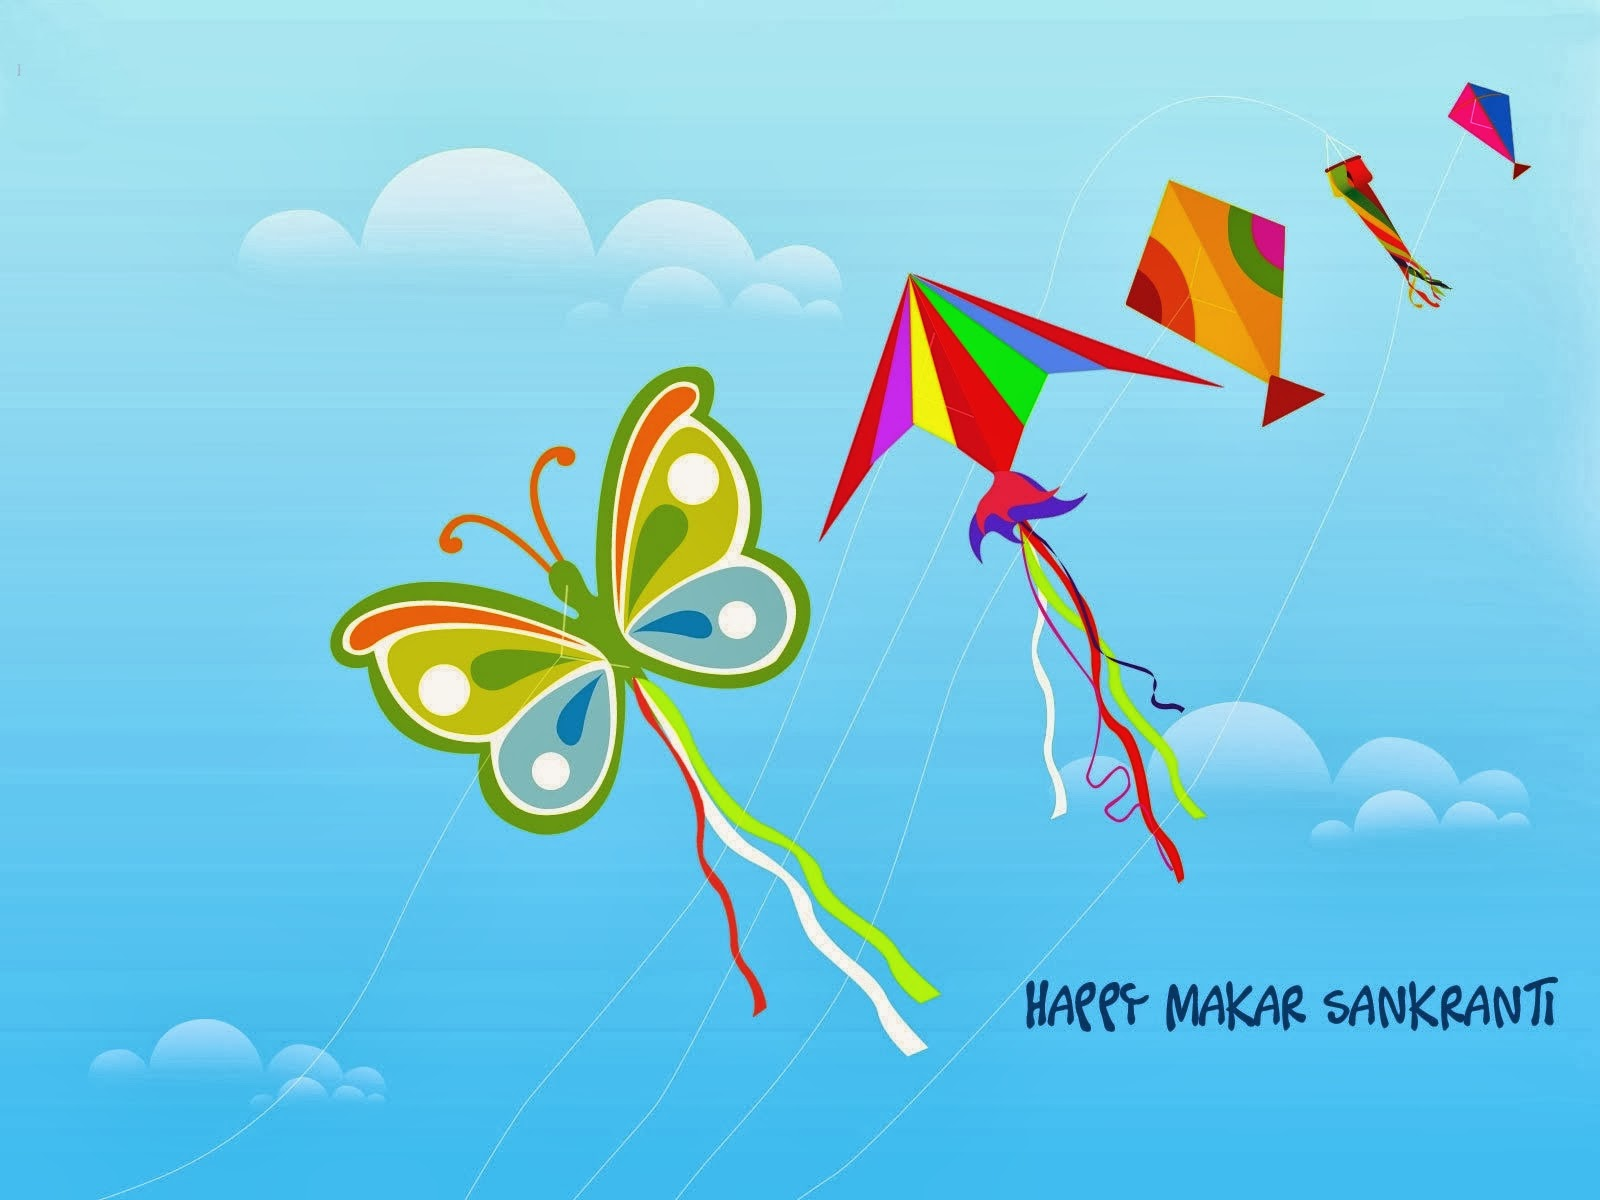 Happy makar sankranti wishes and greeting cards happiness style this greeting is being sent ur way 2 wish u everything that the occasion is meant 2 bring have a happy makar sankranti wishing u a happy makar m4hsunfo